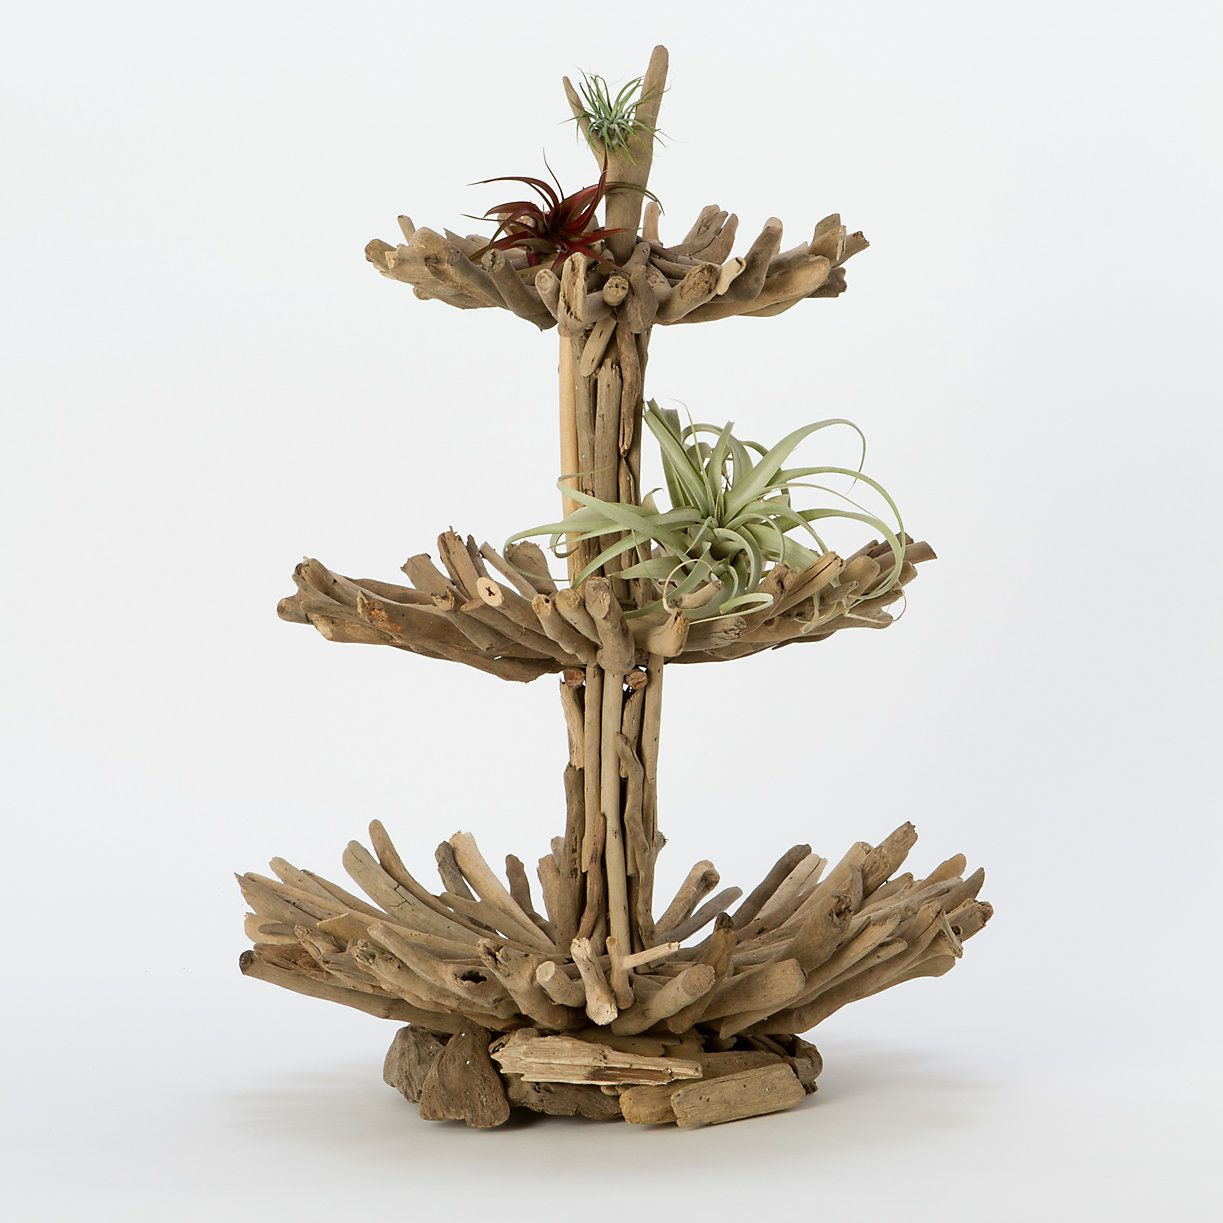 Terrain Home Decor: Twisted Driftwood Epergne In House+Home HOME+DÉCOR Room